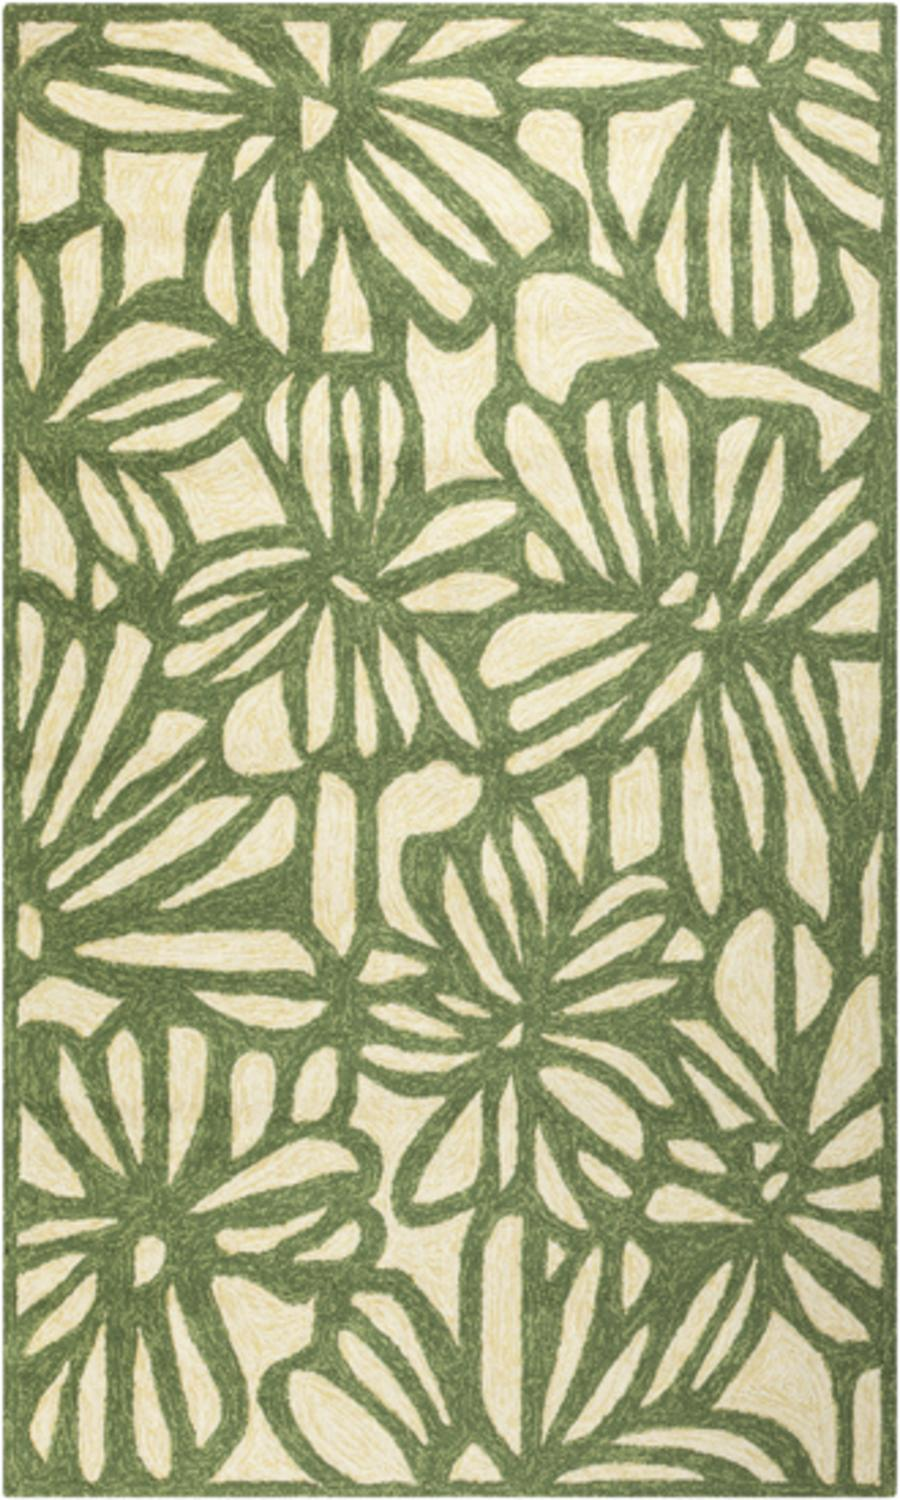 8' x 10.6' Floral Sketch Spruce green and Ivory Indoor Outdoor Area Throw Rug by Diva At Home